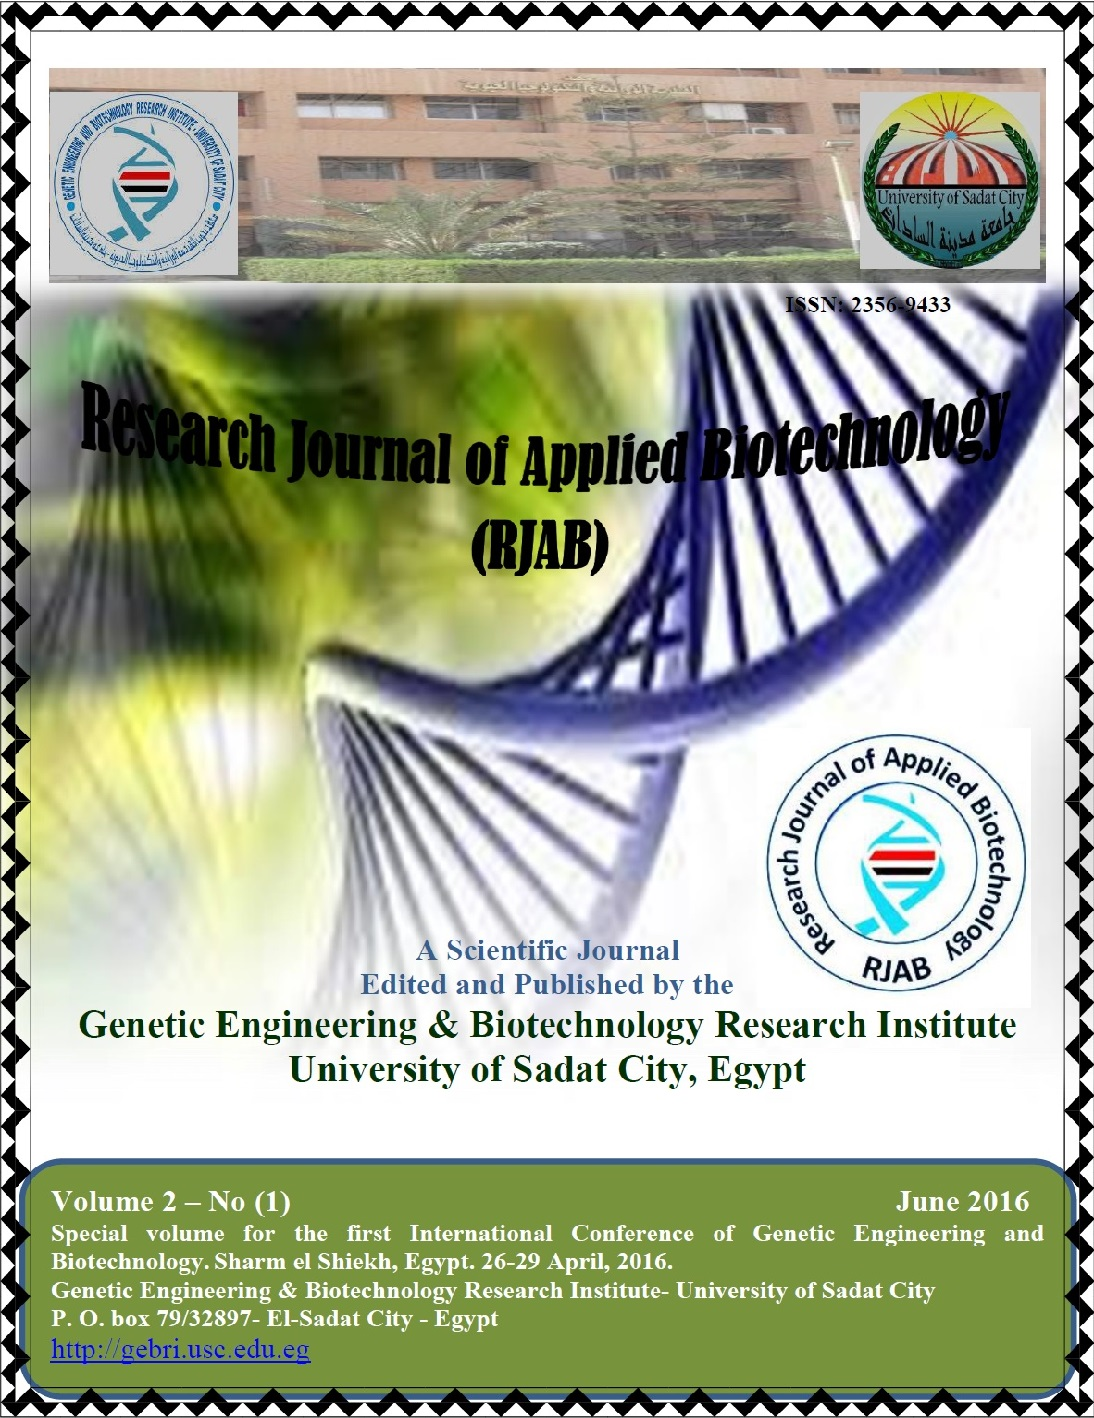 Research Journal of Applied Biotechnology